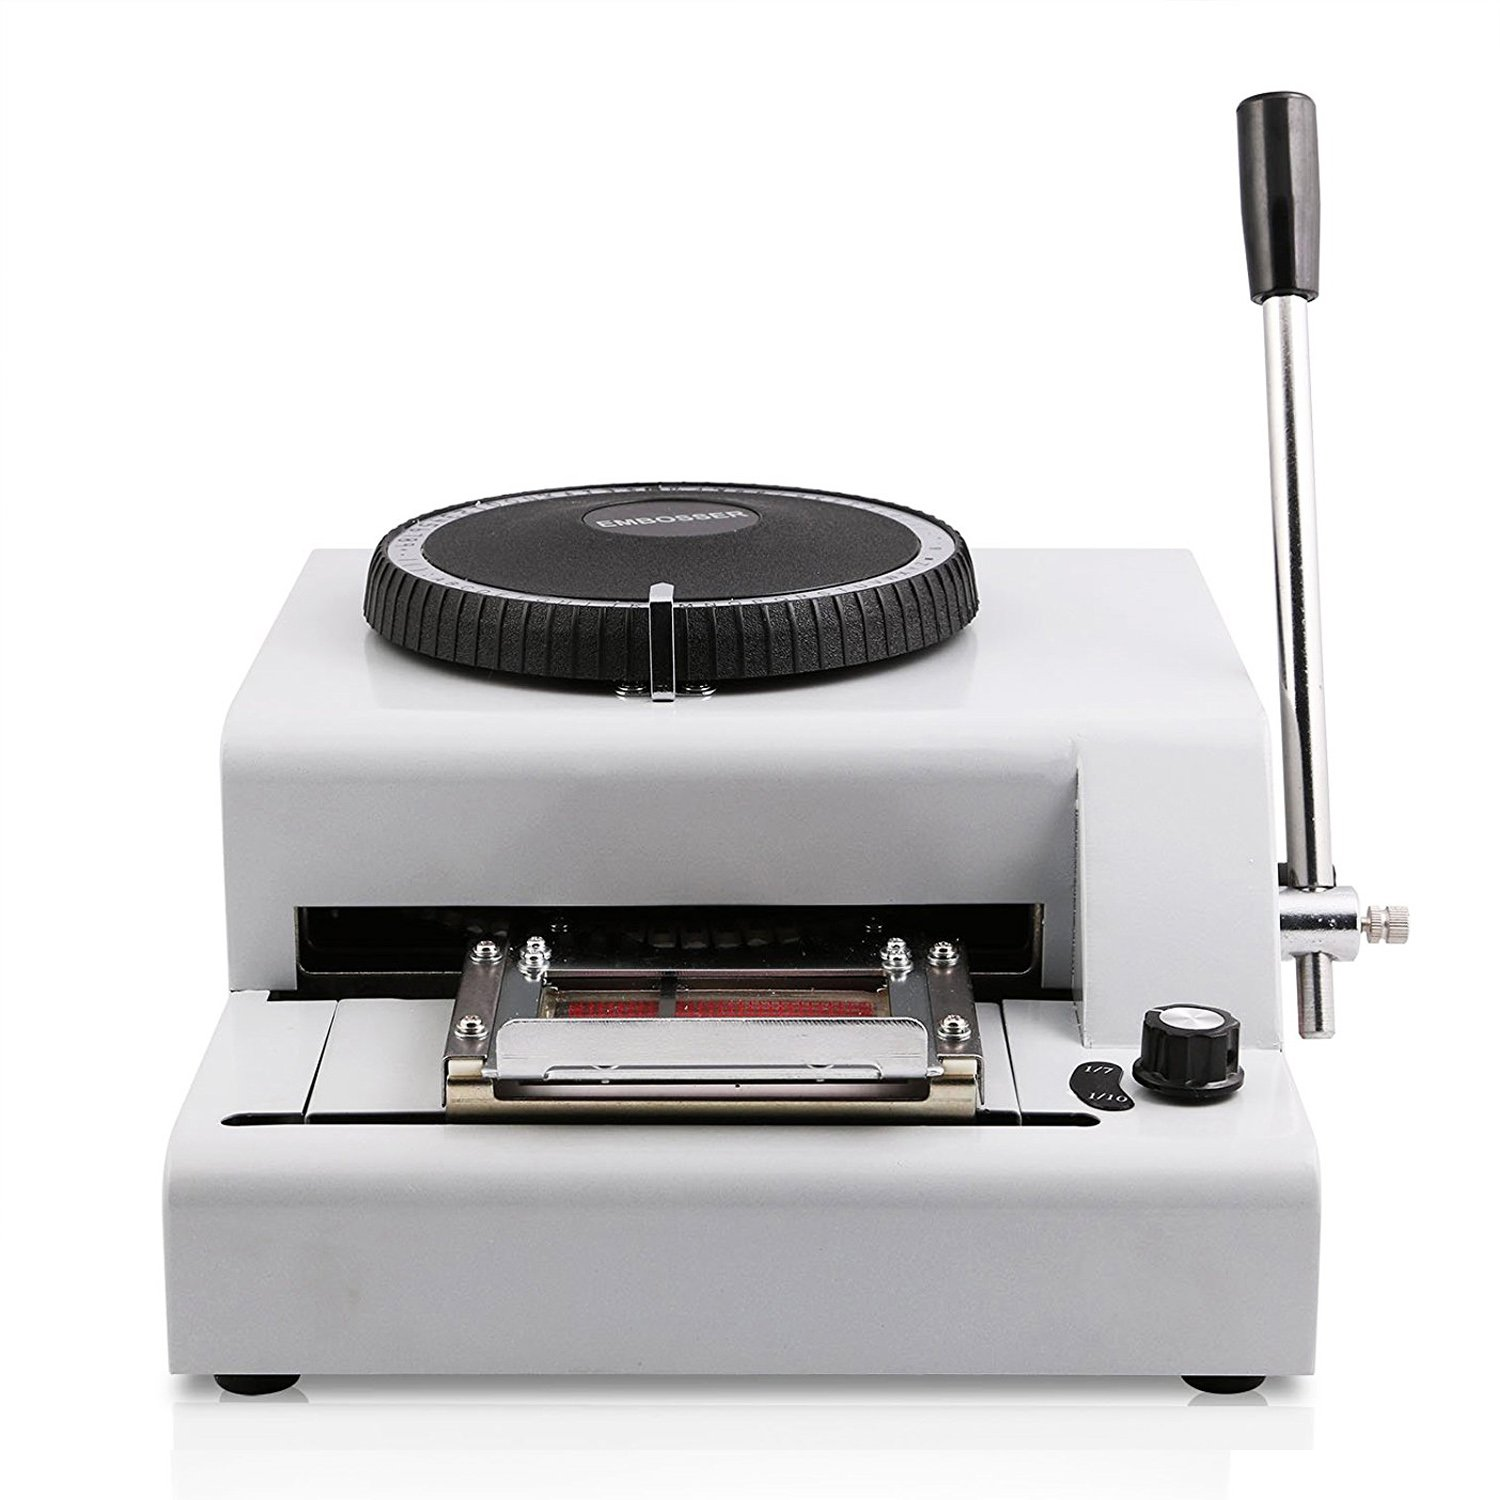 SHZOND Embossing Machine 72 Characters Card Embosser Printer Gift Card Credit ID PVC Card Embosser Stamping Machine Manual Embosser Machine